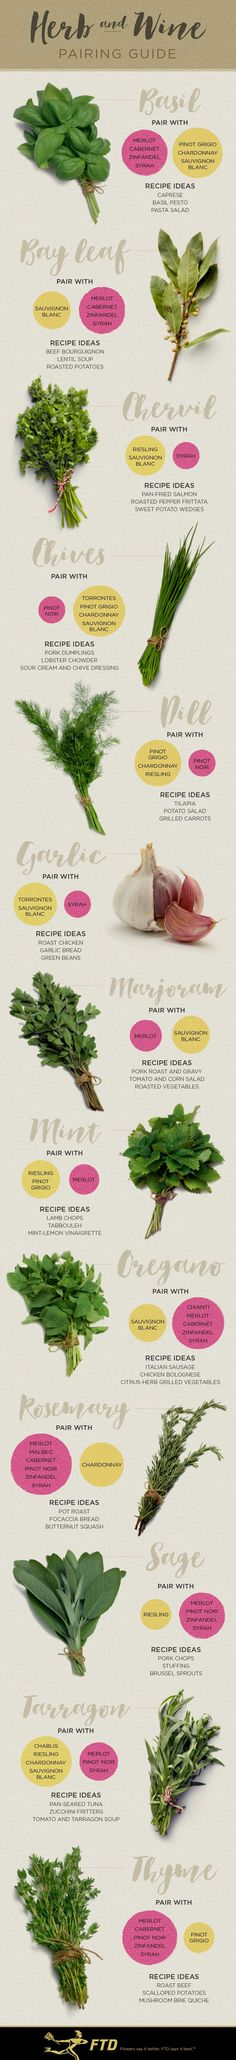 A Pairing Guide: The Best Wines For The Herbs You Cook With! - I love cooking with fresh herbs and I love wine, so what better way to learn about pairing the two than with this infographic!